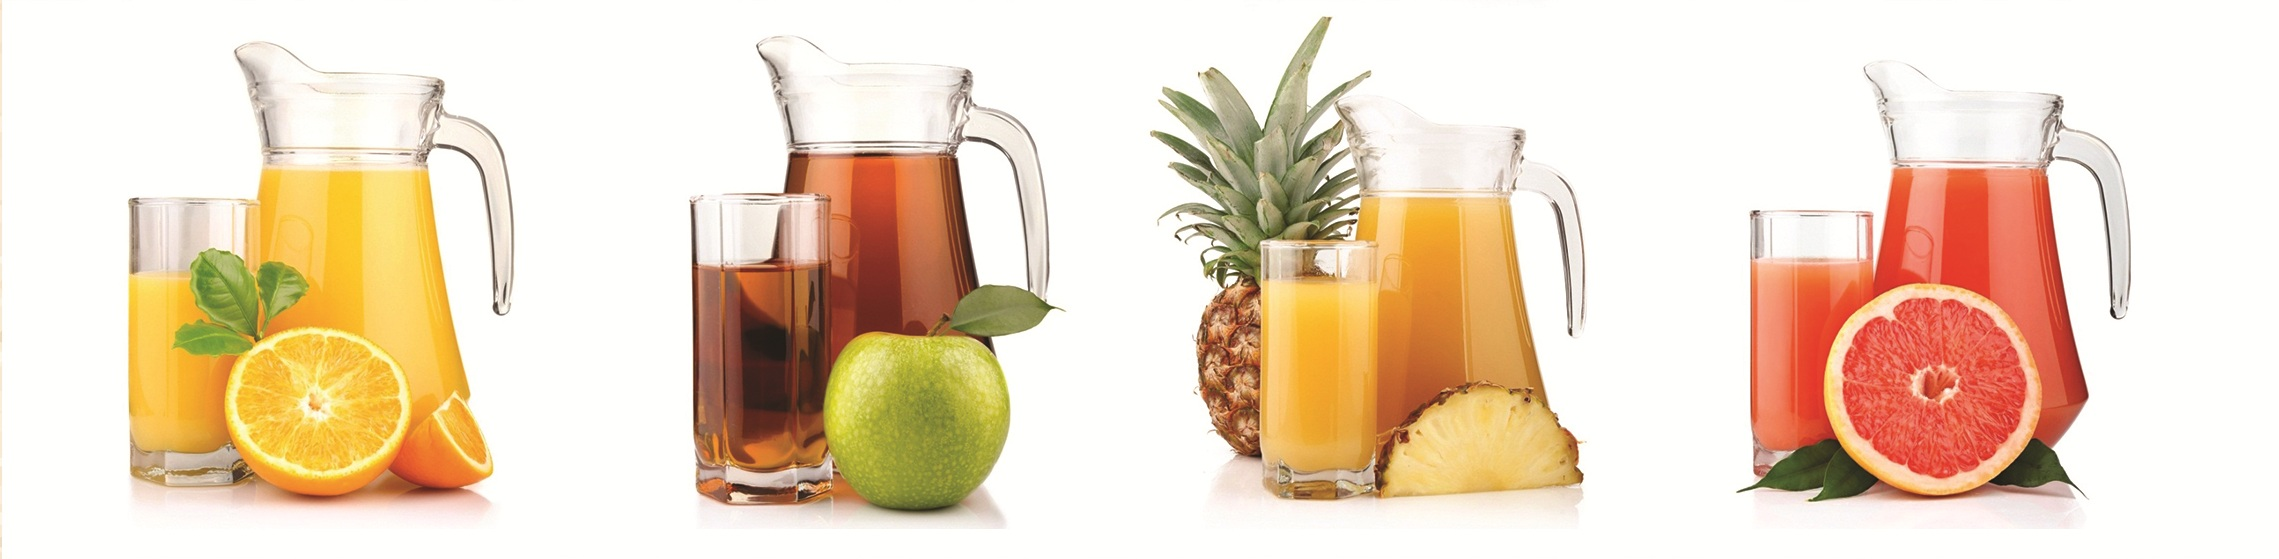 Varieties of juices supplied to airlines, hotels, restaurants, resorts, cafes, etc